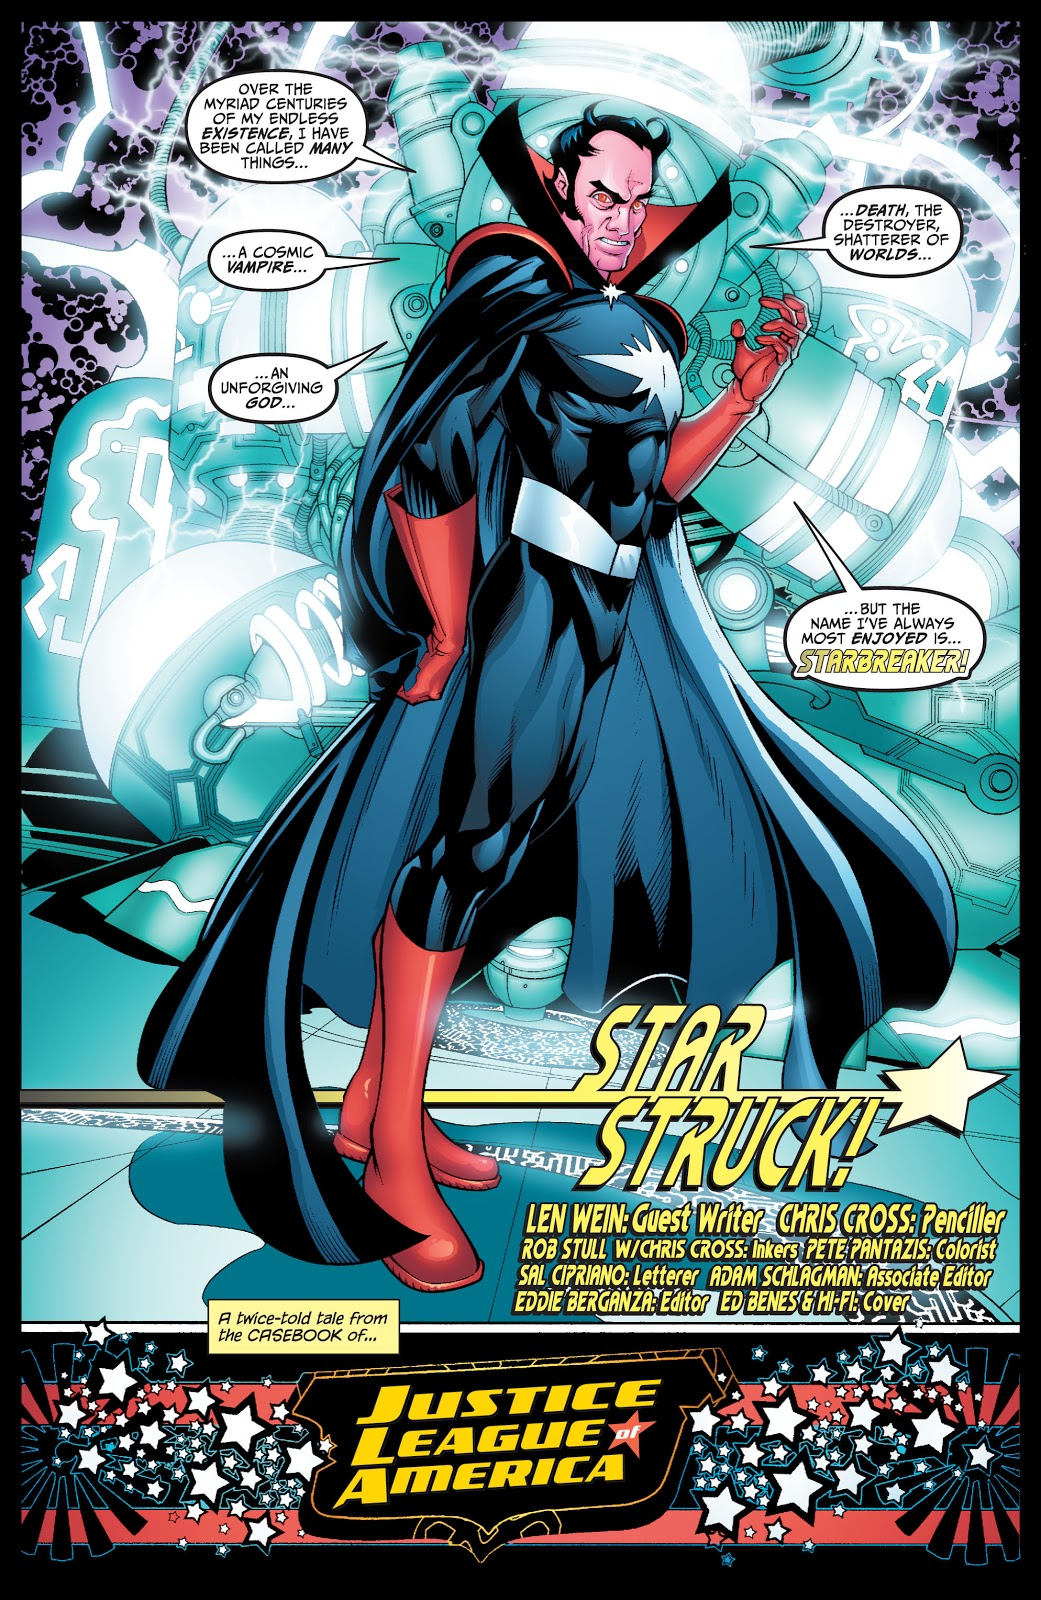 Starbreaker (Justice League of America Vol. 2 #29)